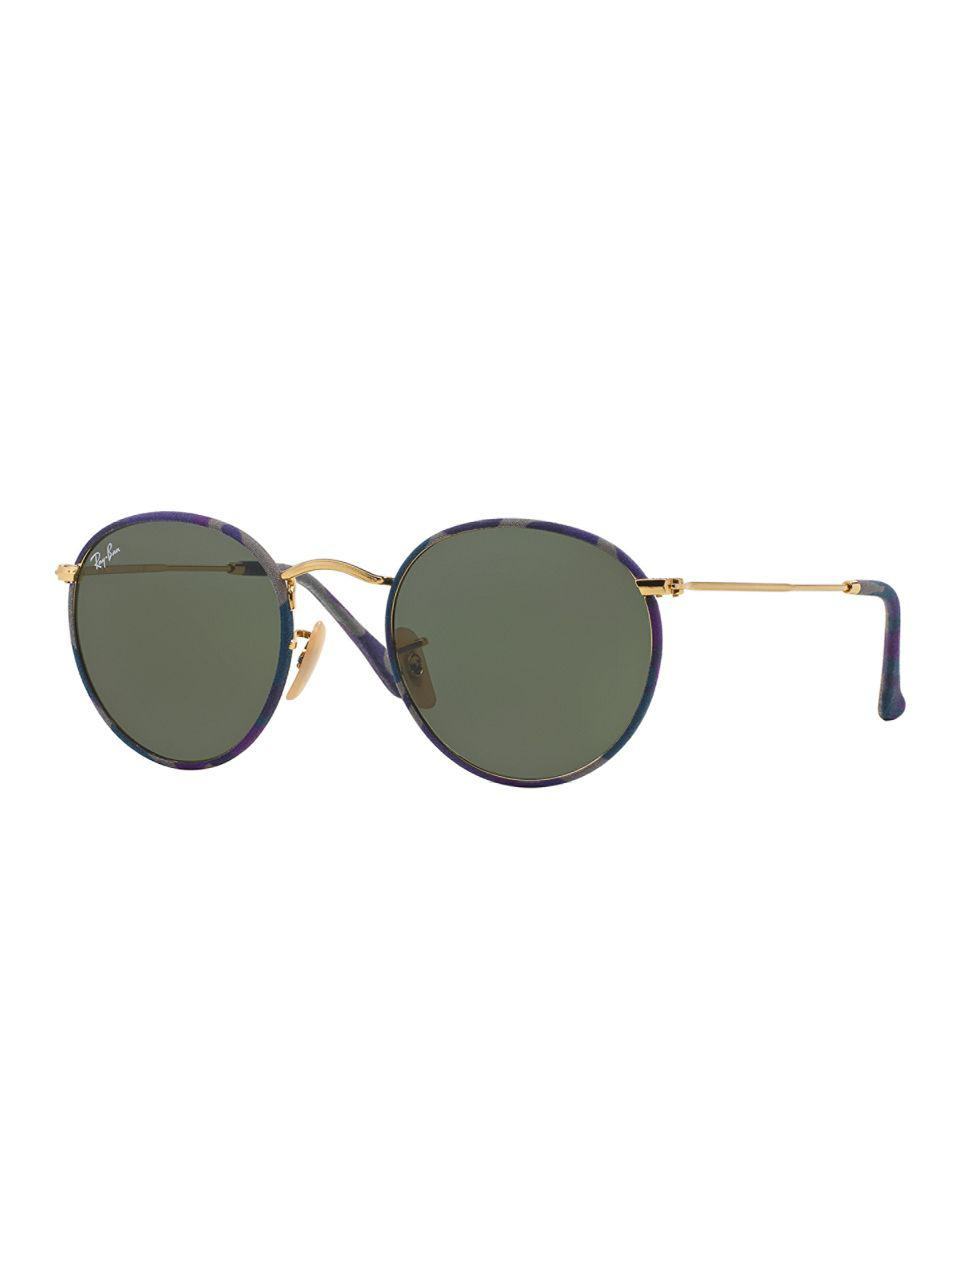 4c842ff75a Lyst - Ray-Ban 50mm Round Camouflage Sunglasses in Purple